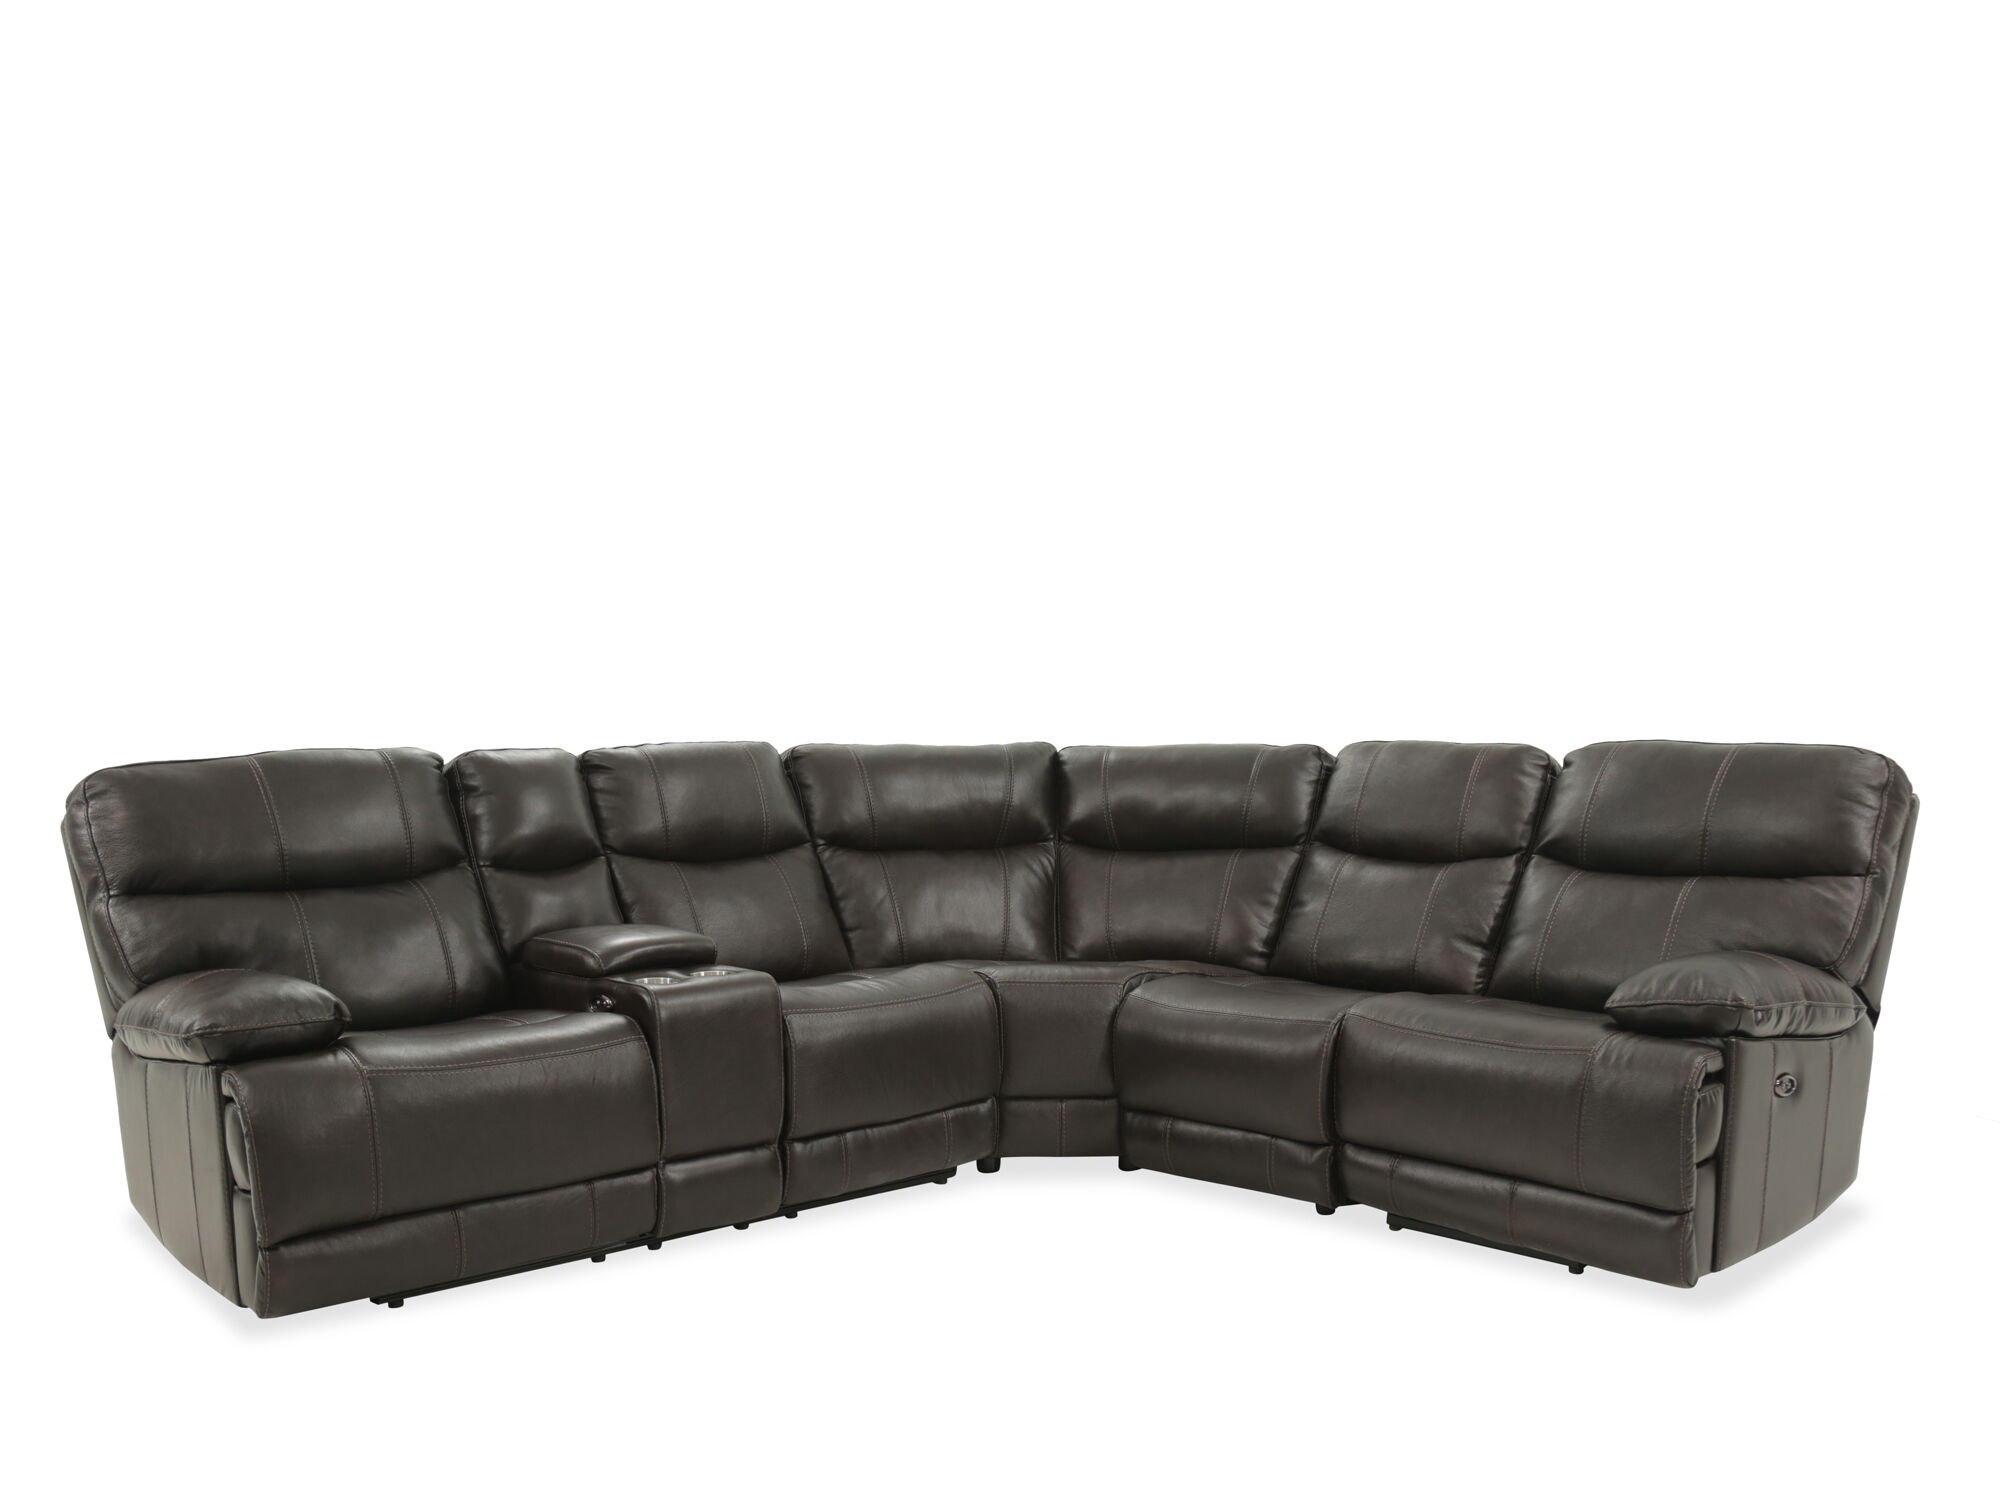 4 piece recliner sectional sofa mission style bed four leather reclining in brown mathis